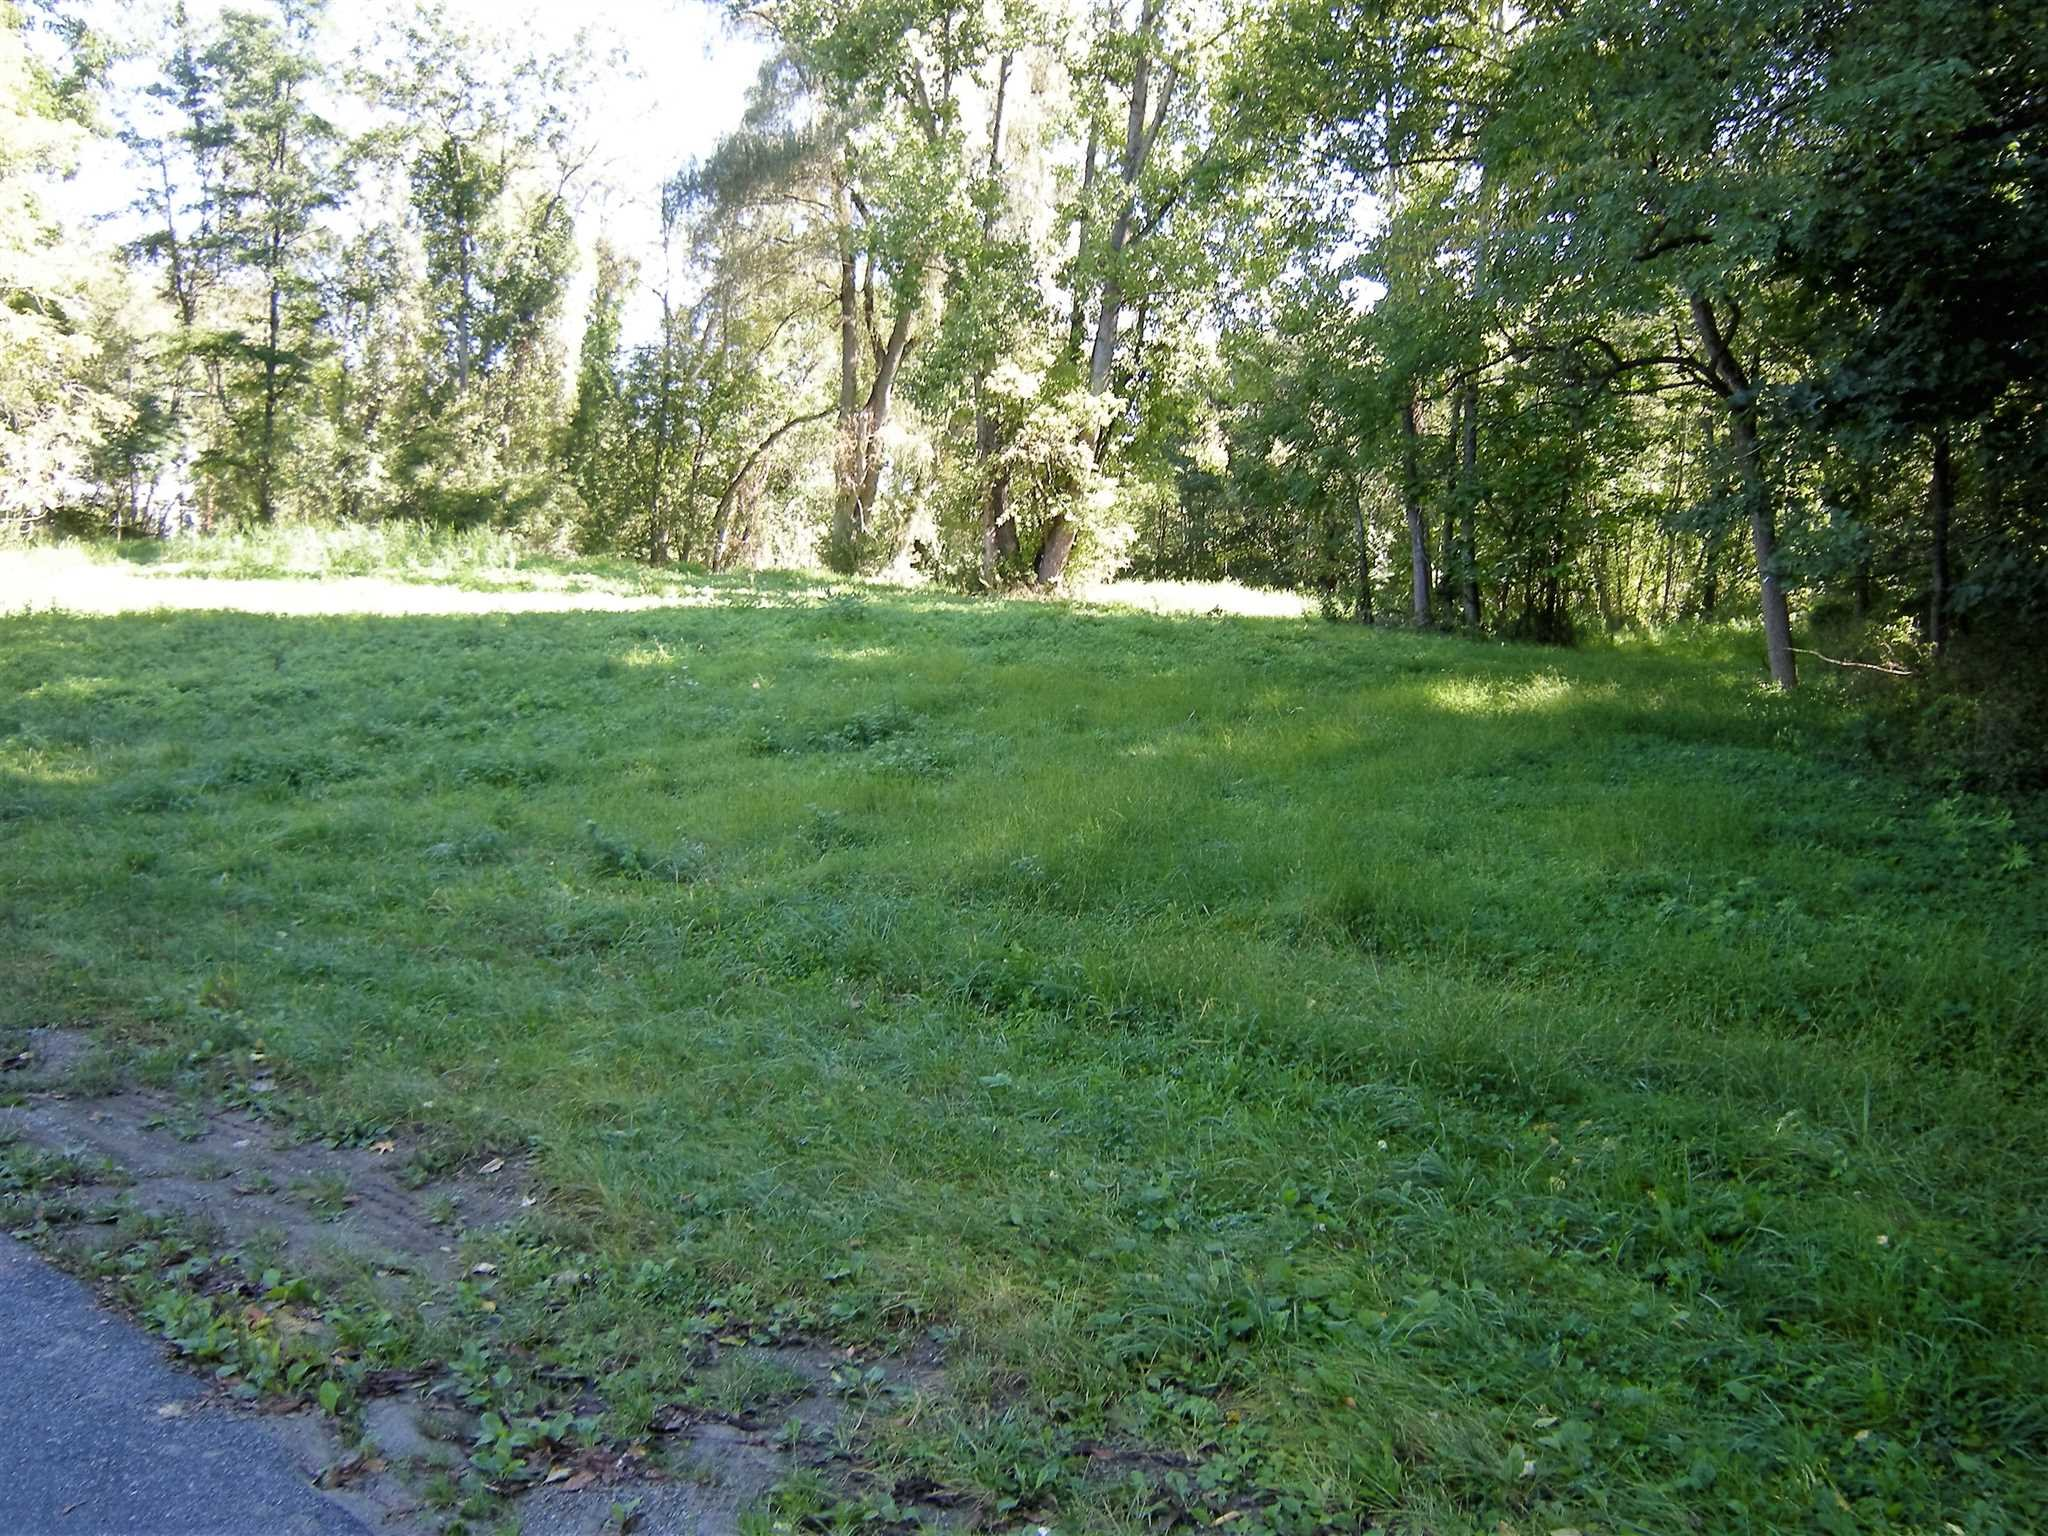 Land for Sale at 139 MONTGOMERY Street 139 MONTGOMERY Street Rhinebeck, New York 12572 United States